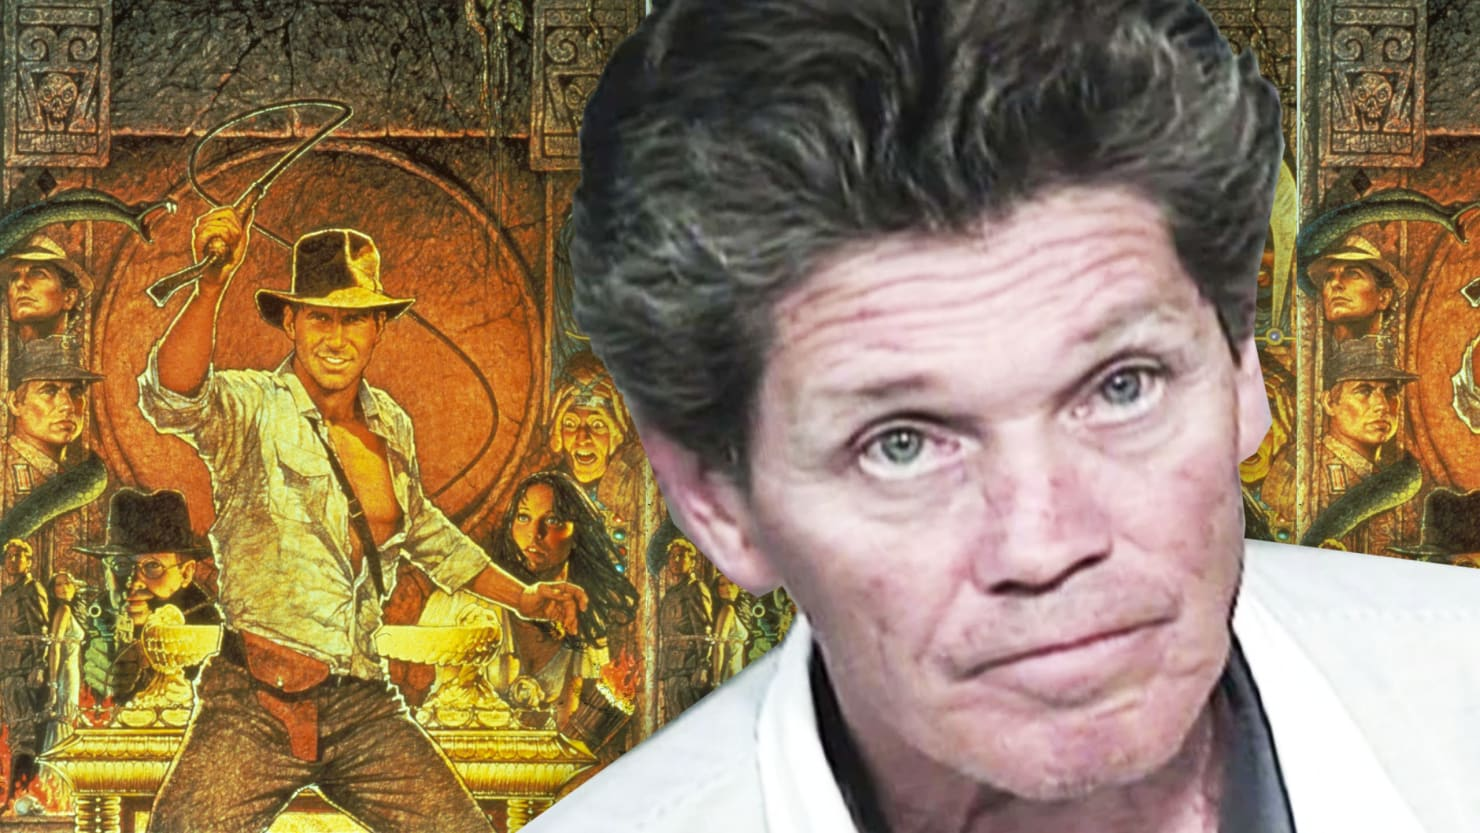 Sovereign Citizen Lured FBI Into Home With 'Indiana Jones' Booby Traps